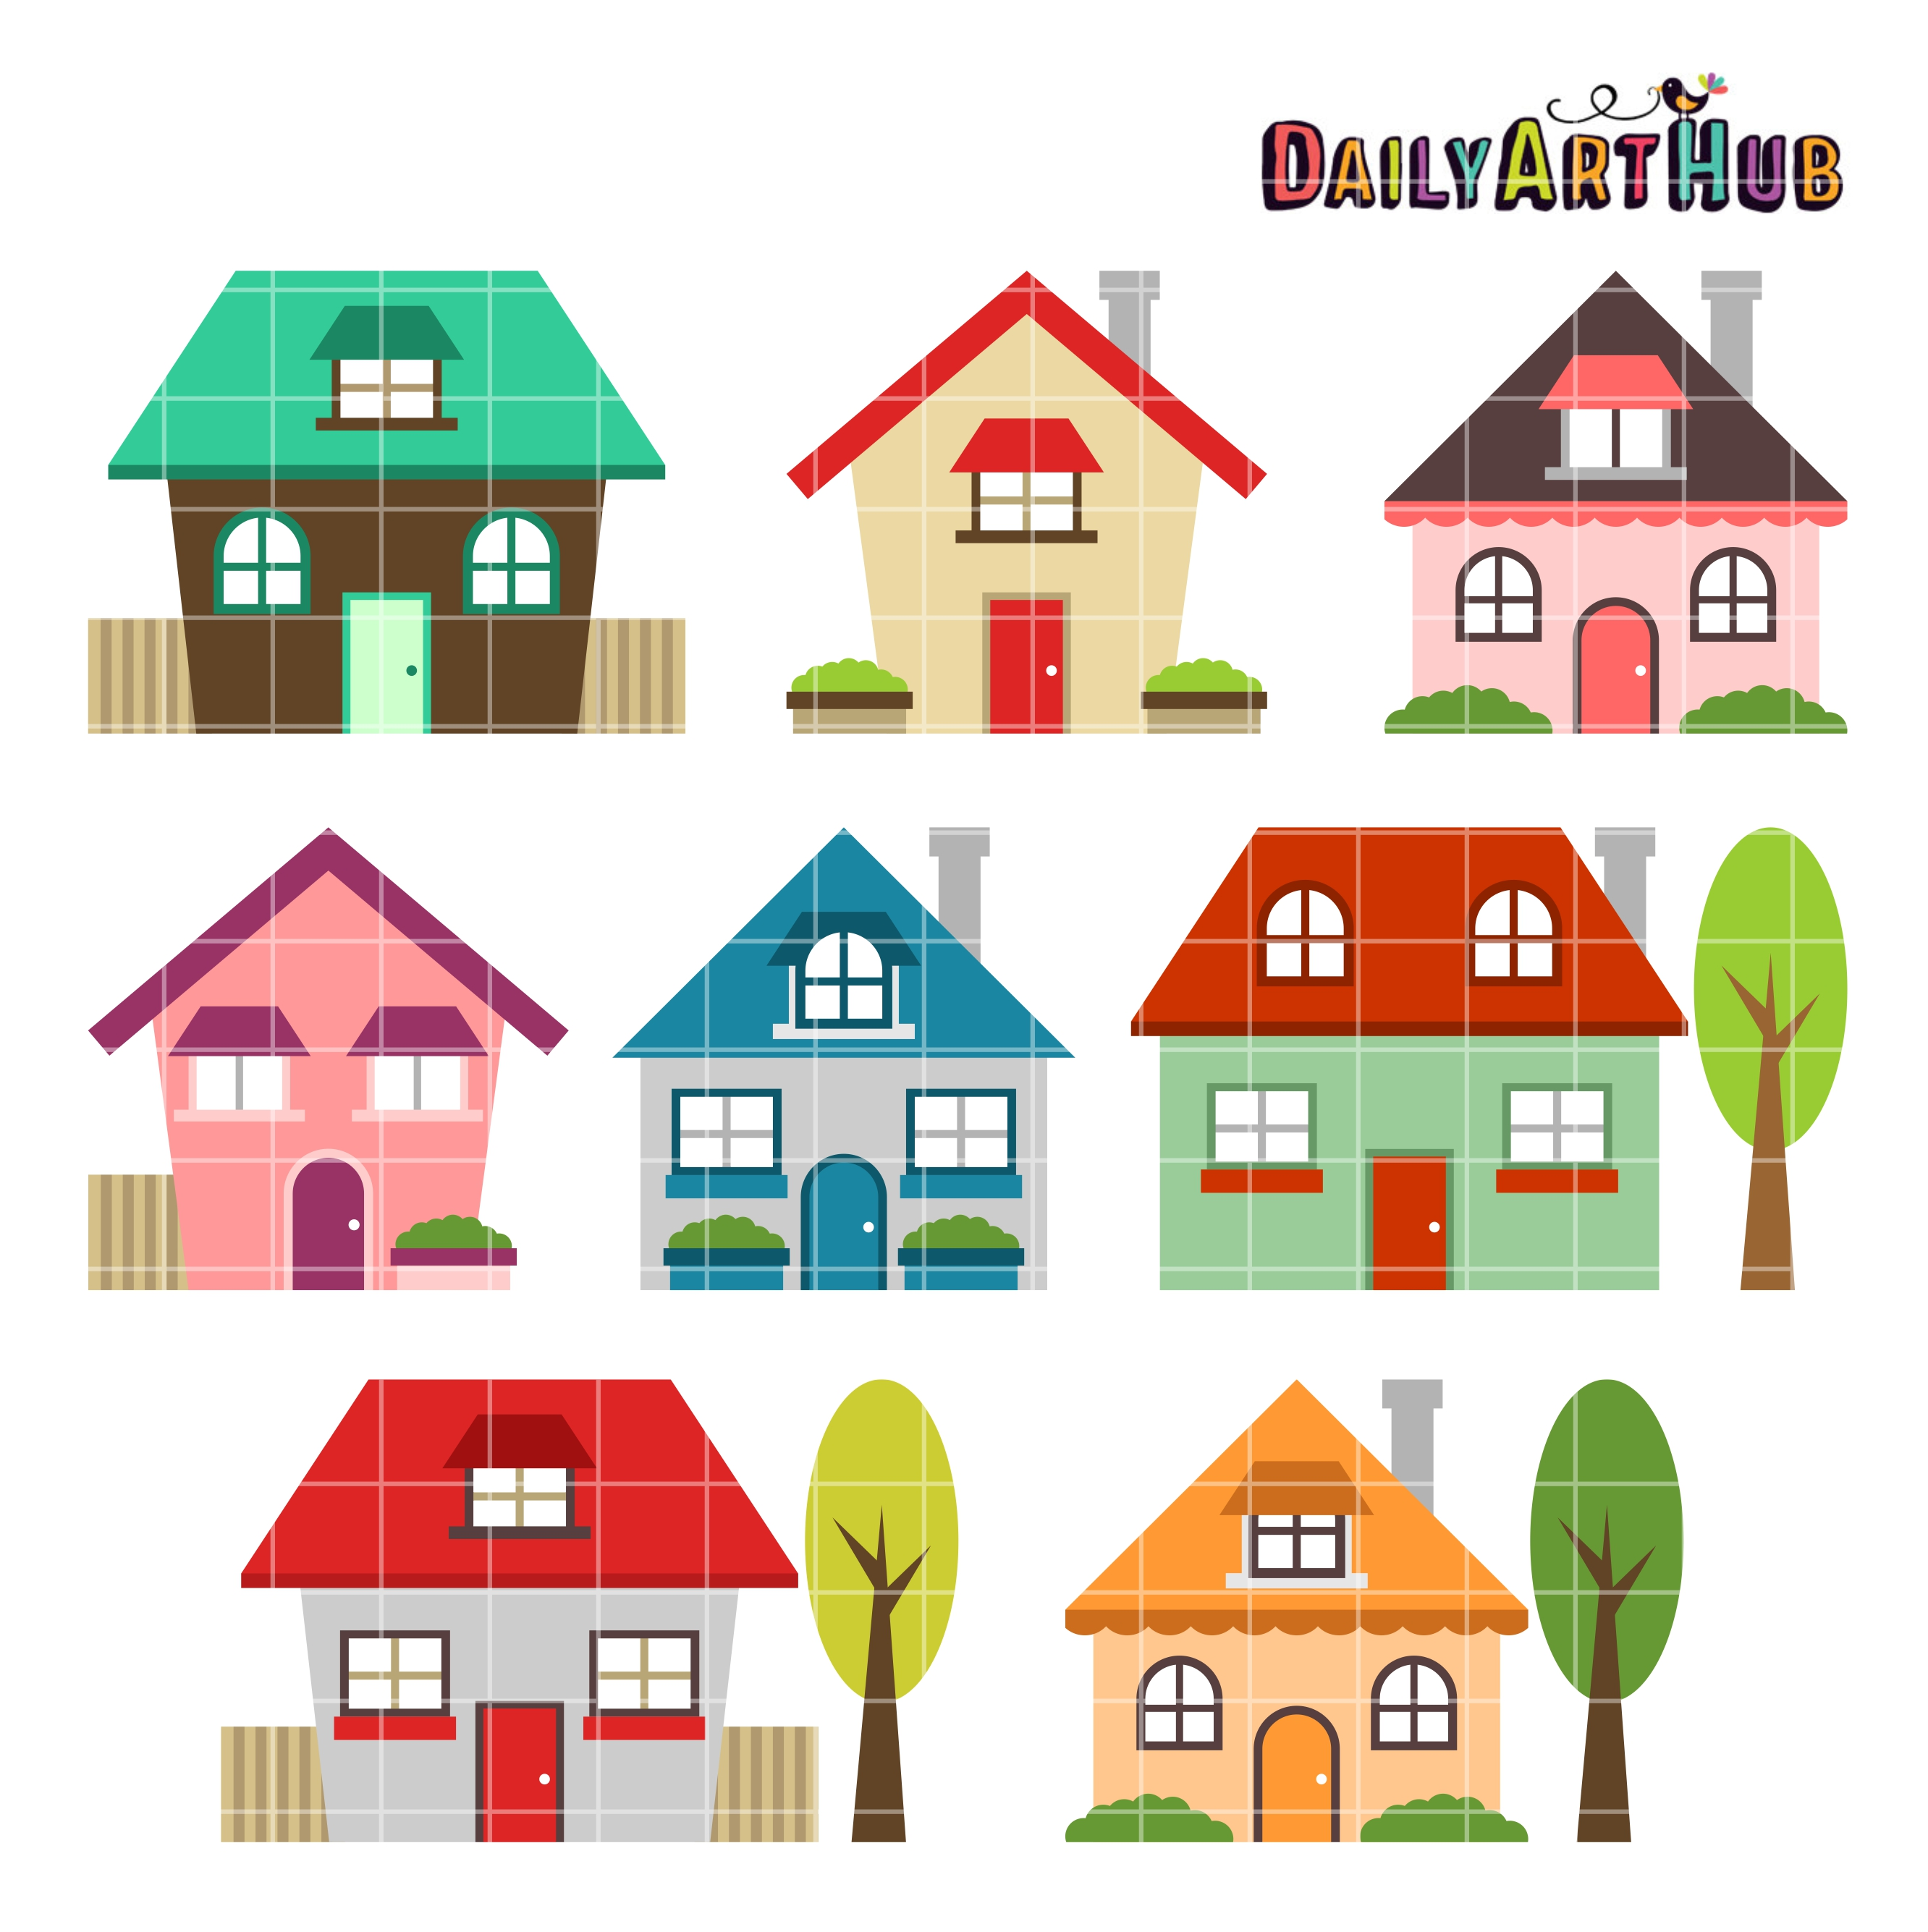 Cute houses clip art set daily art hub for Photos of cute houses